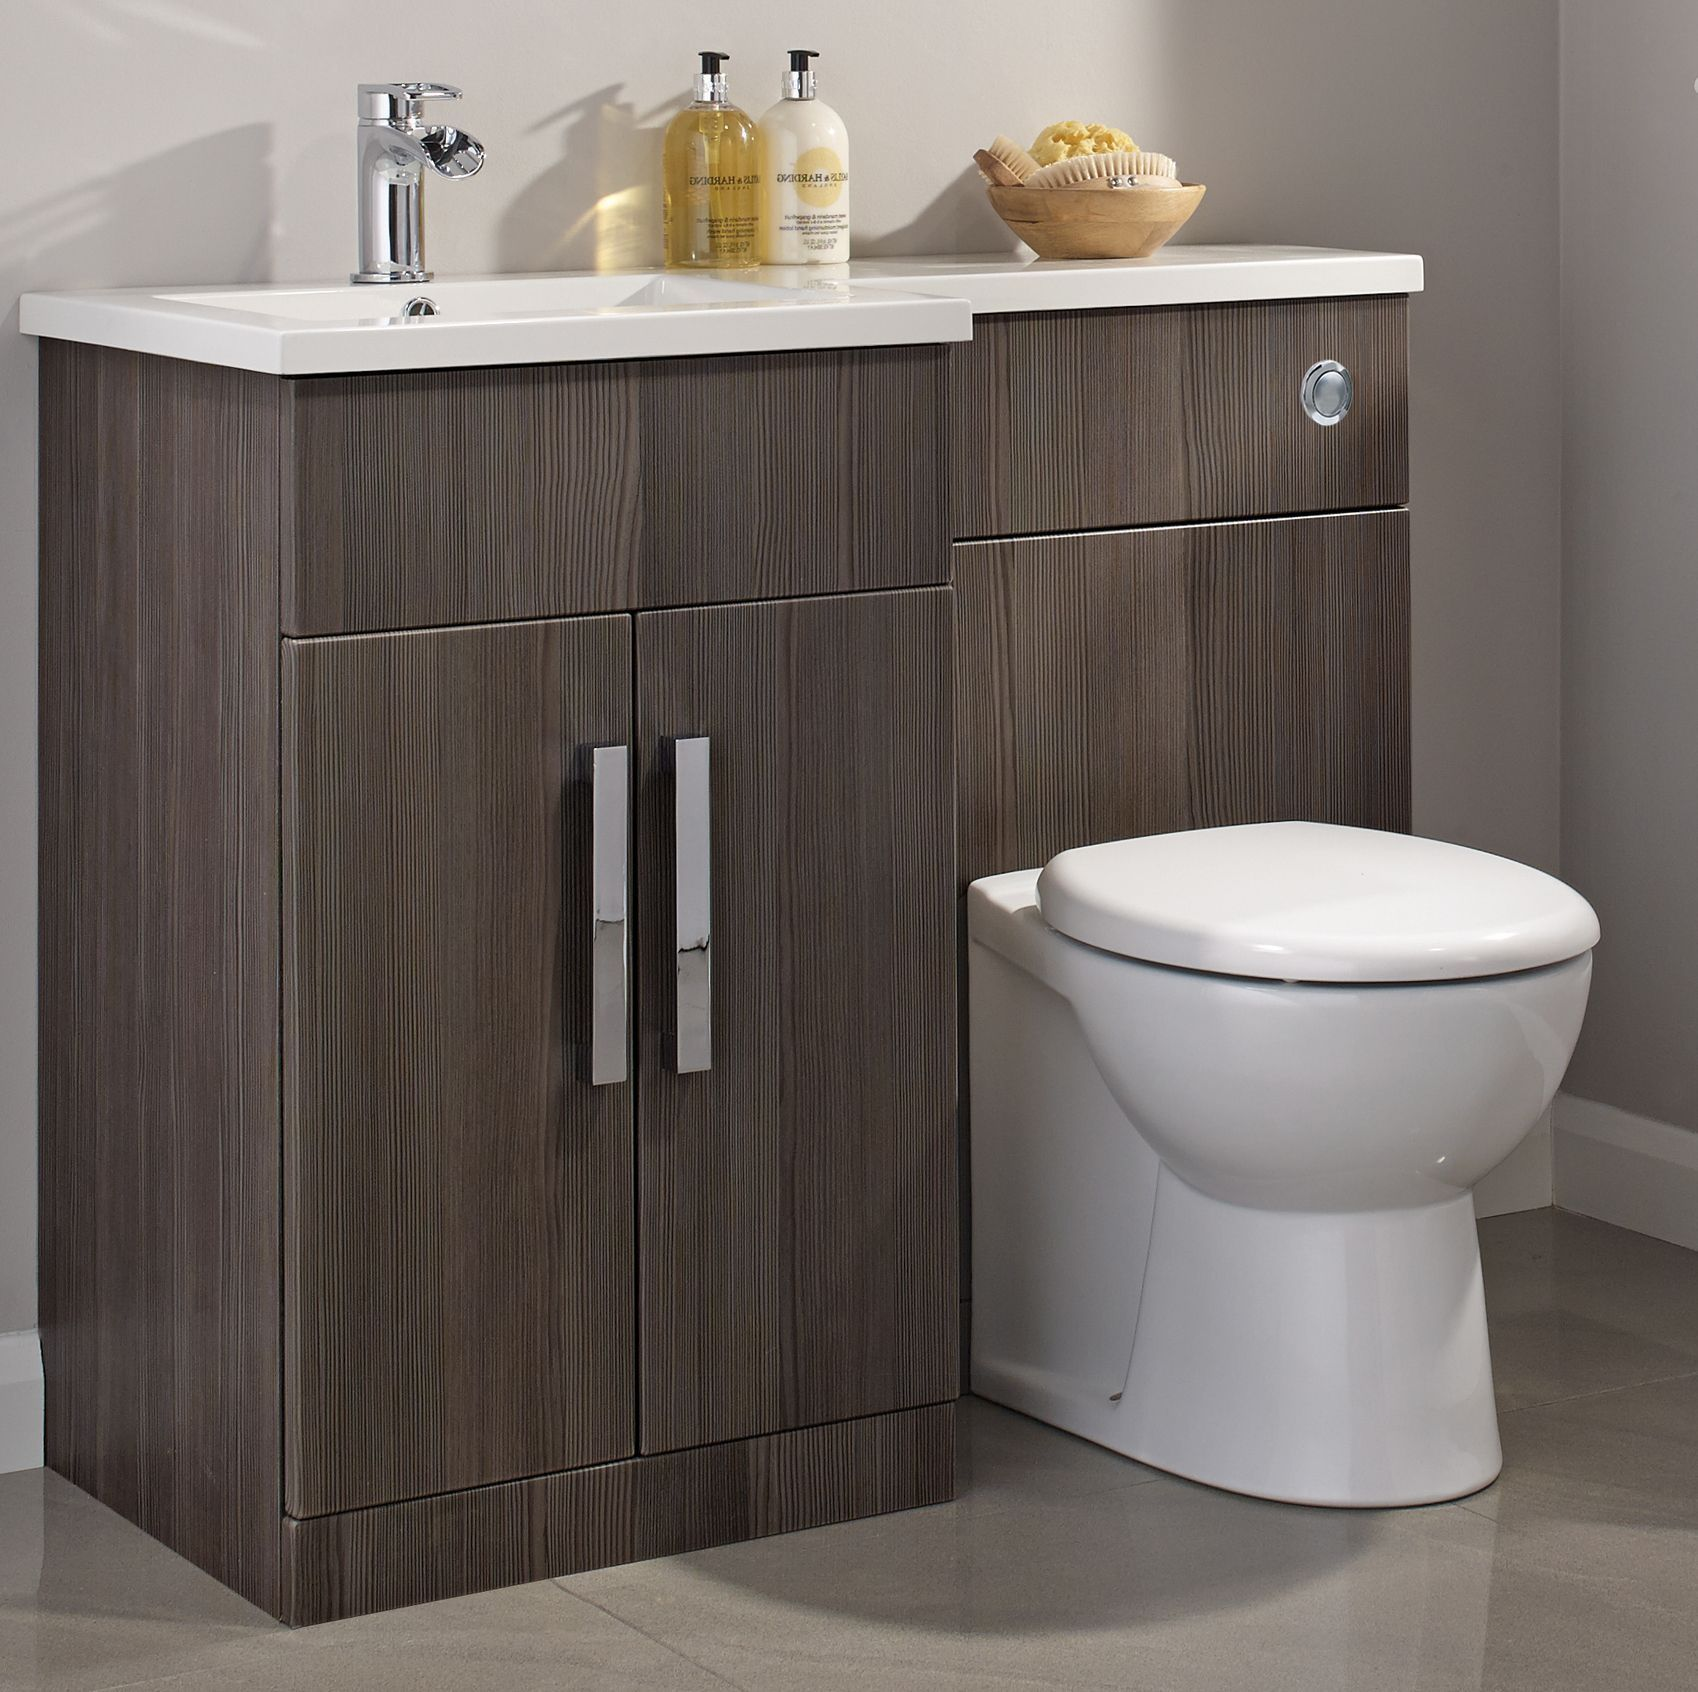 cooke lewis ardesio bodega grey lh vanity toilet pack bq for all your home and garden supplies and advice on all the latest diy trends